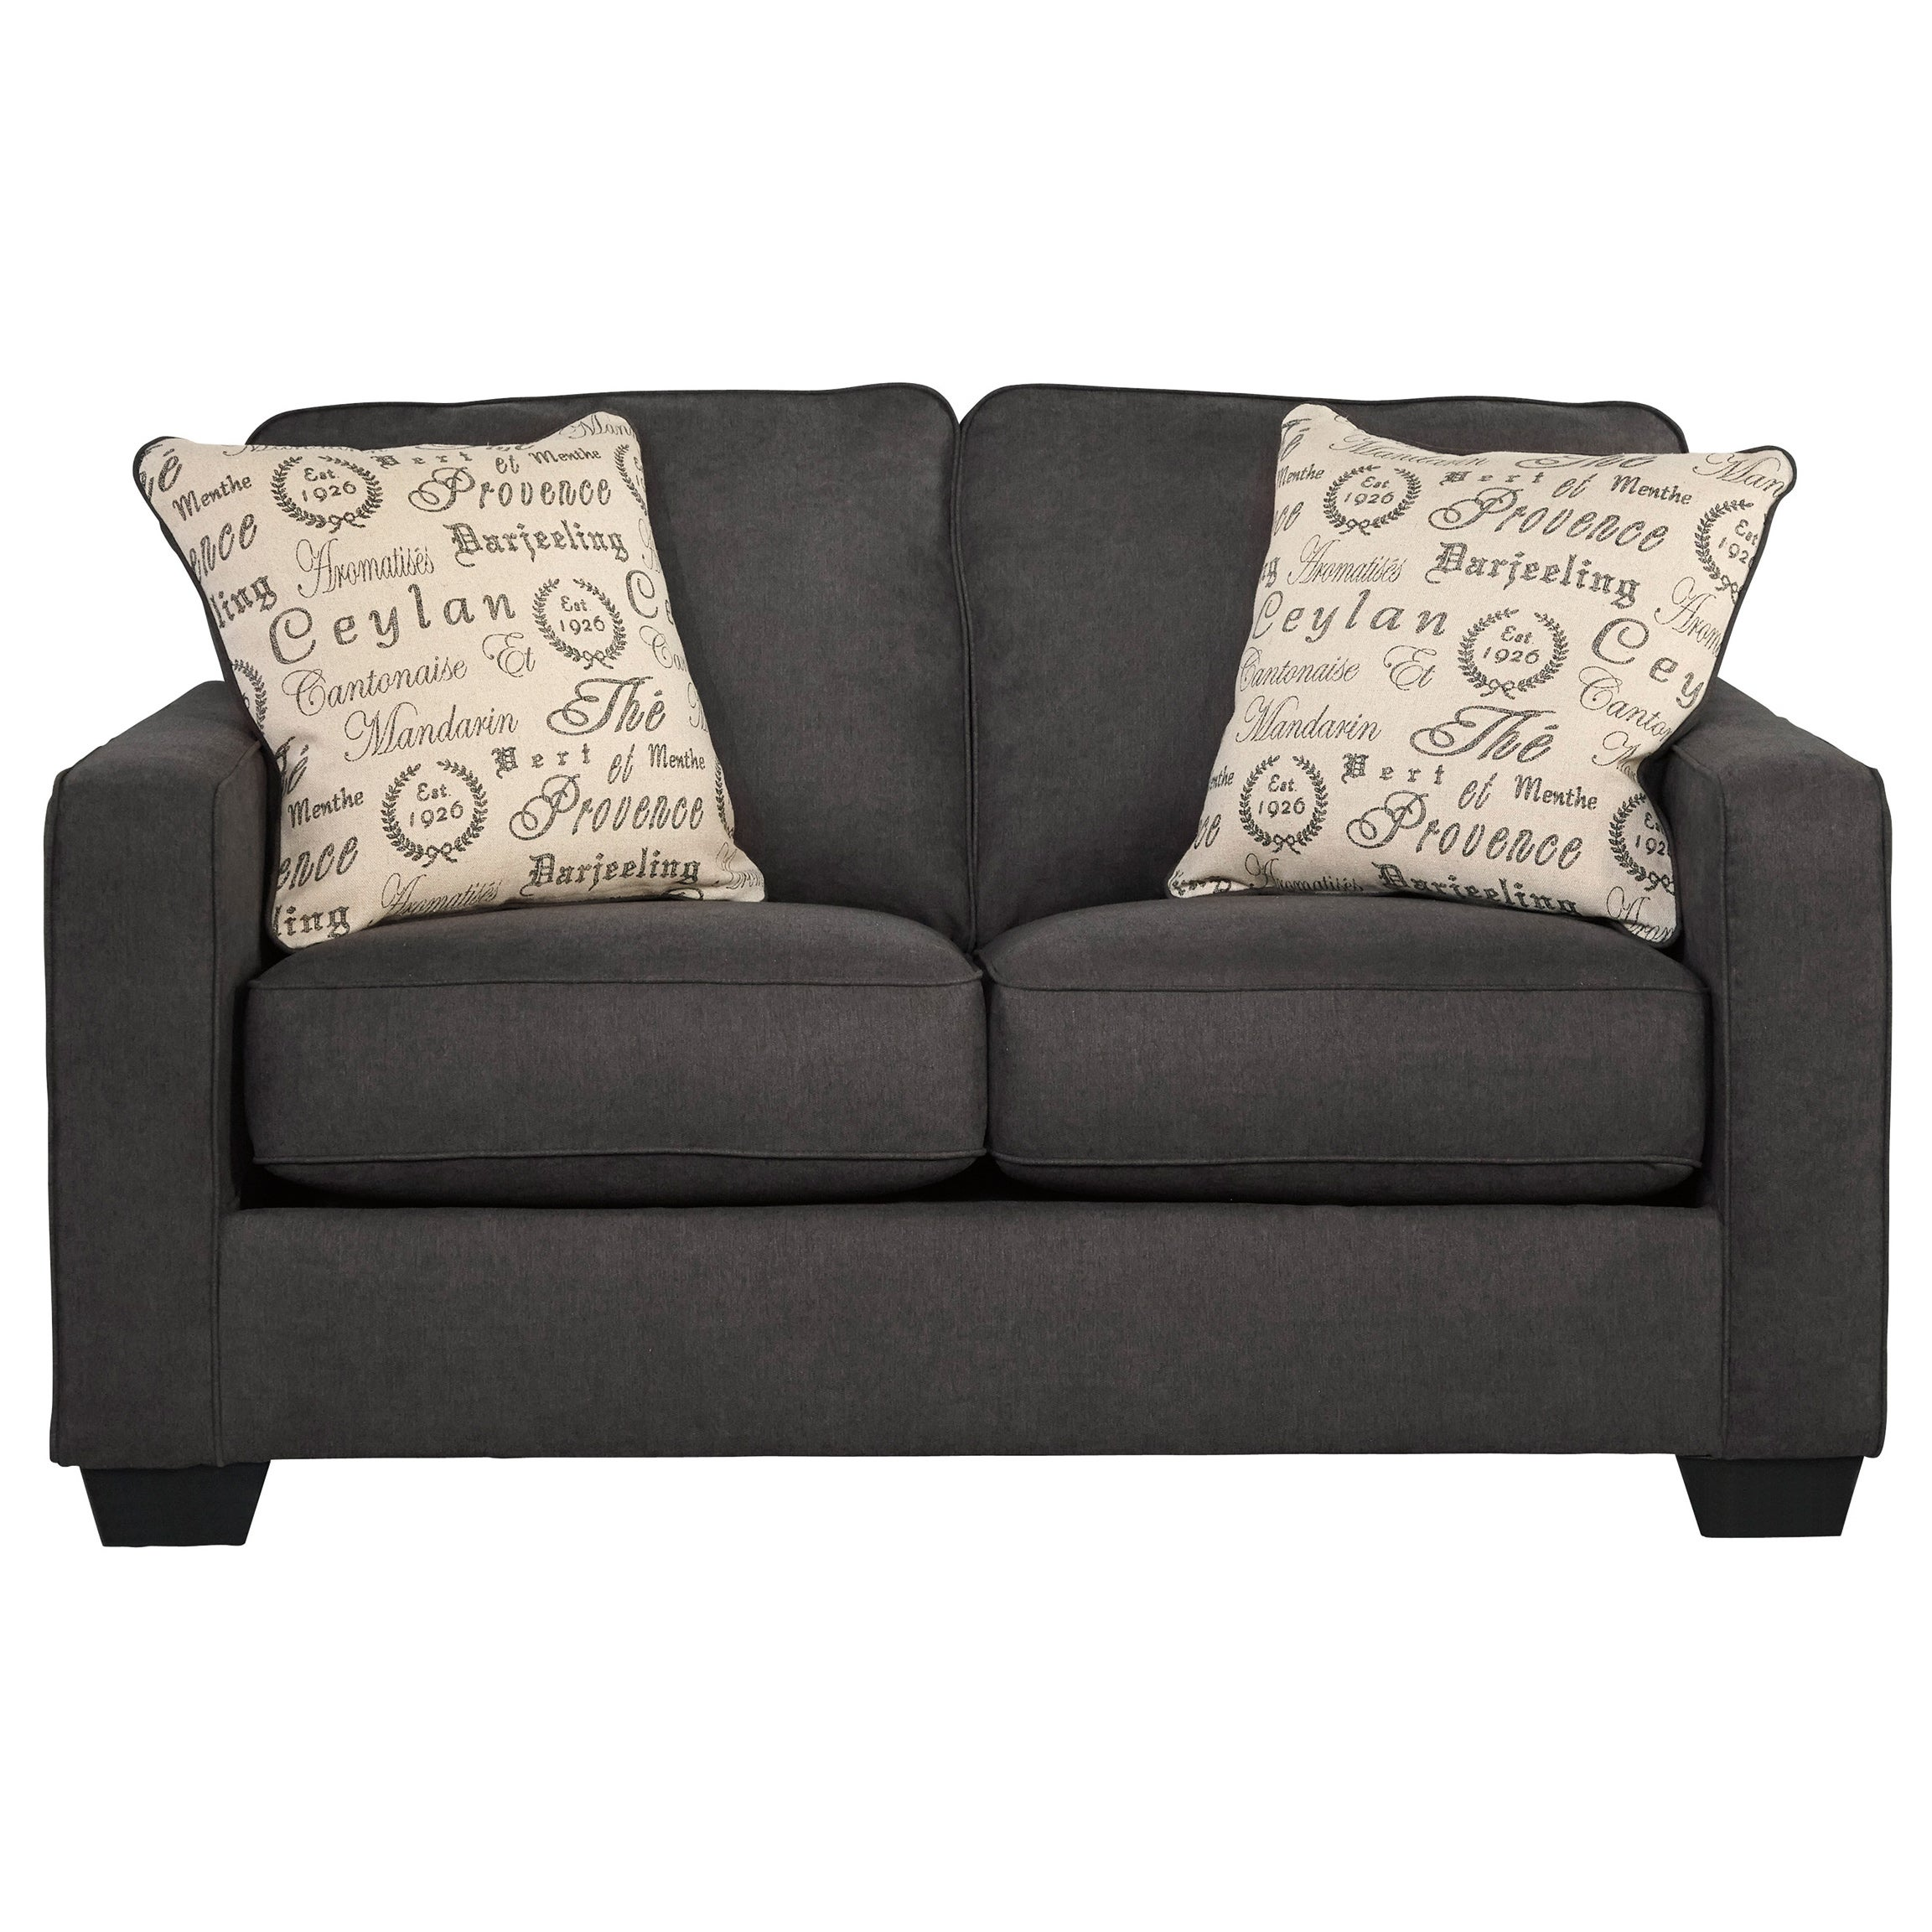 Loveseat Signature Design by Ashley Furniture Store Shop The